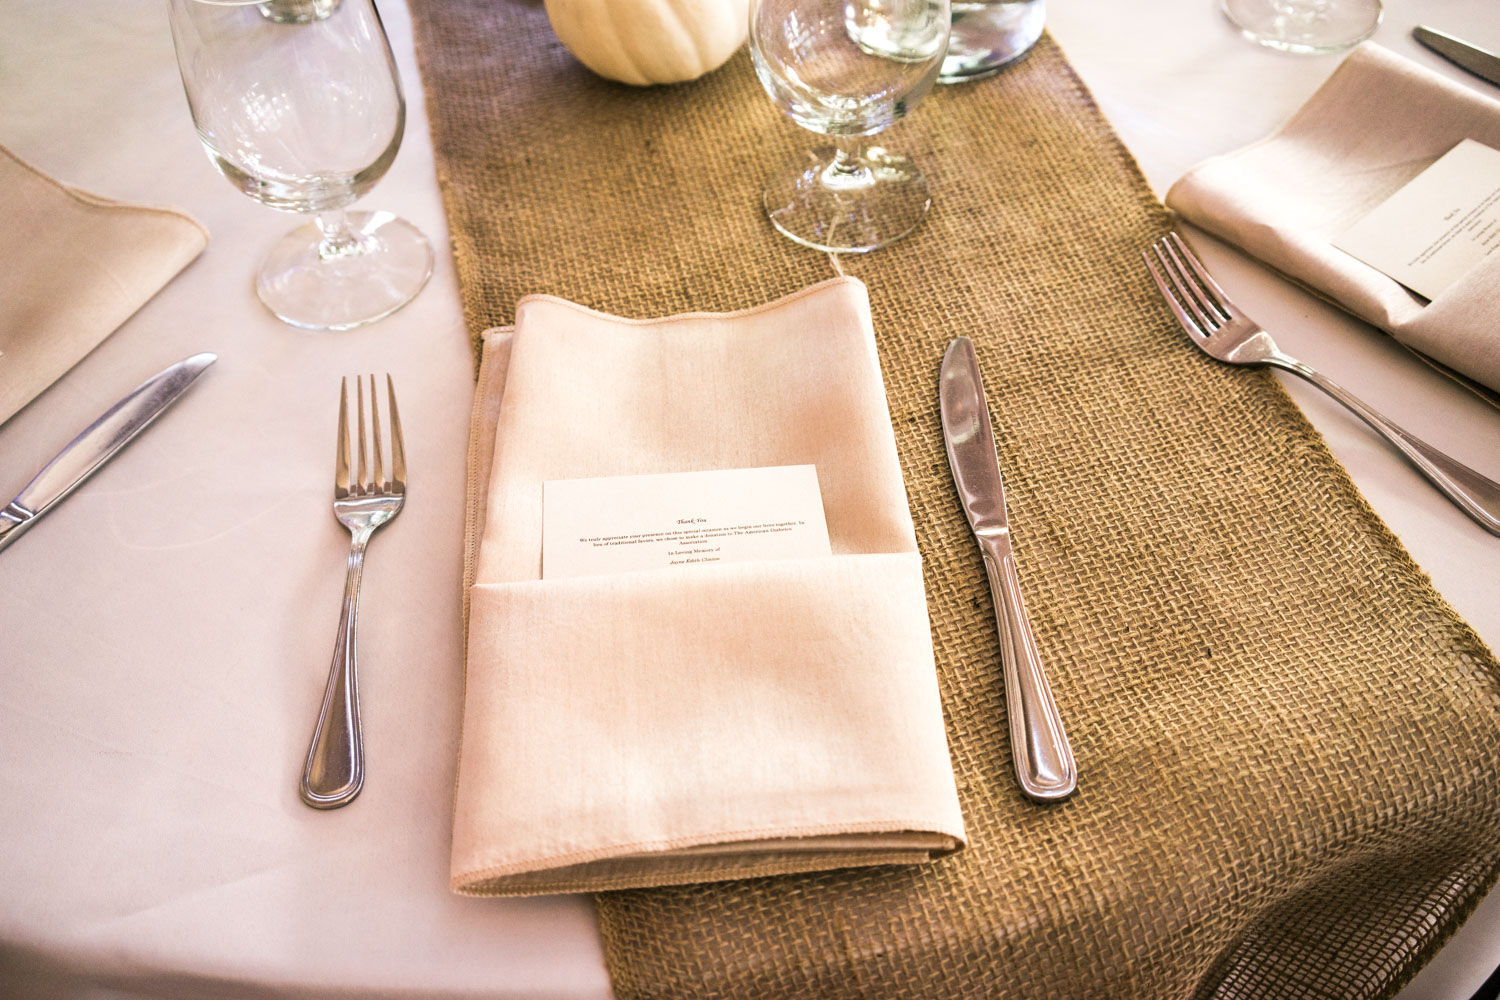 Wedding lunch set up - Jute and silk fabric forms a great combination for the fall weddings.